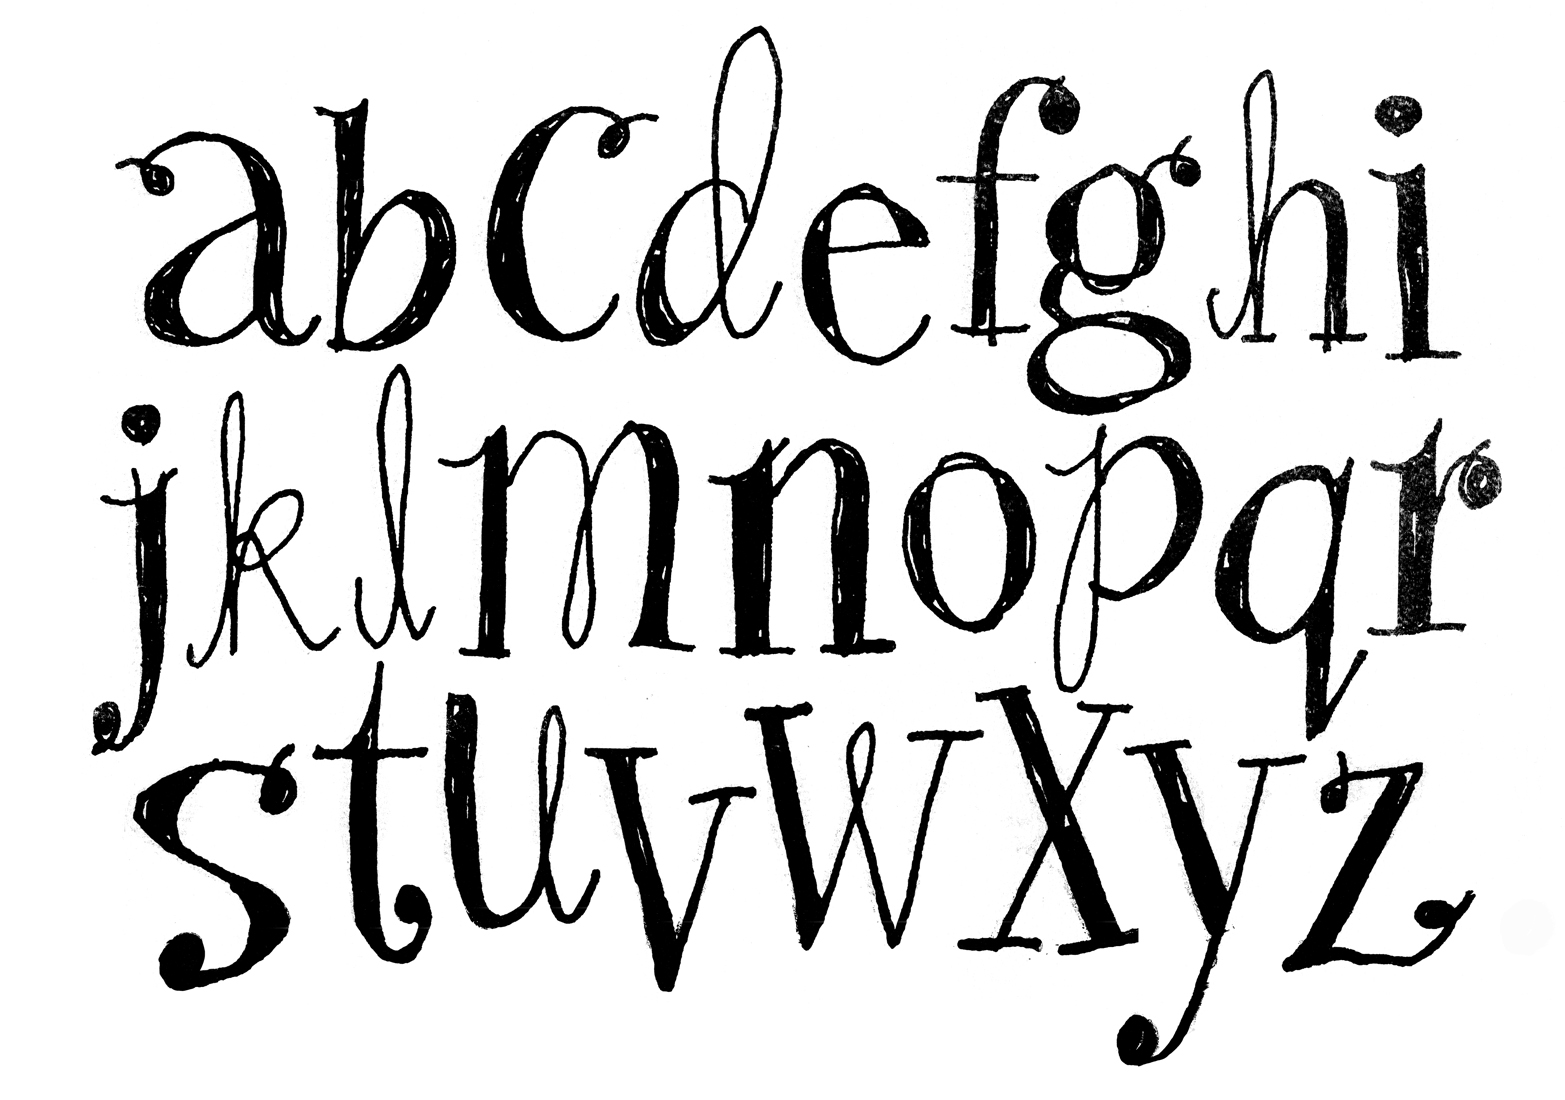 All Designs Are Based On The Alphabet Above Which I Created In 2006